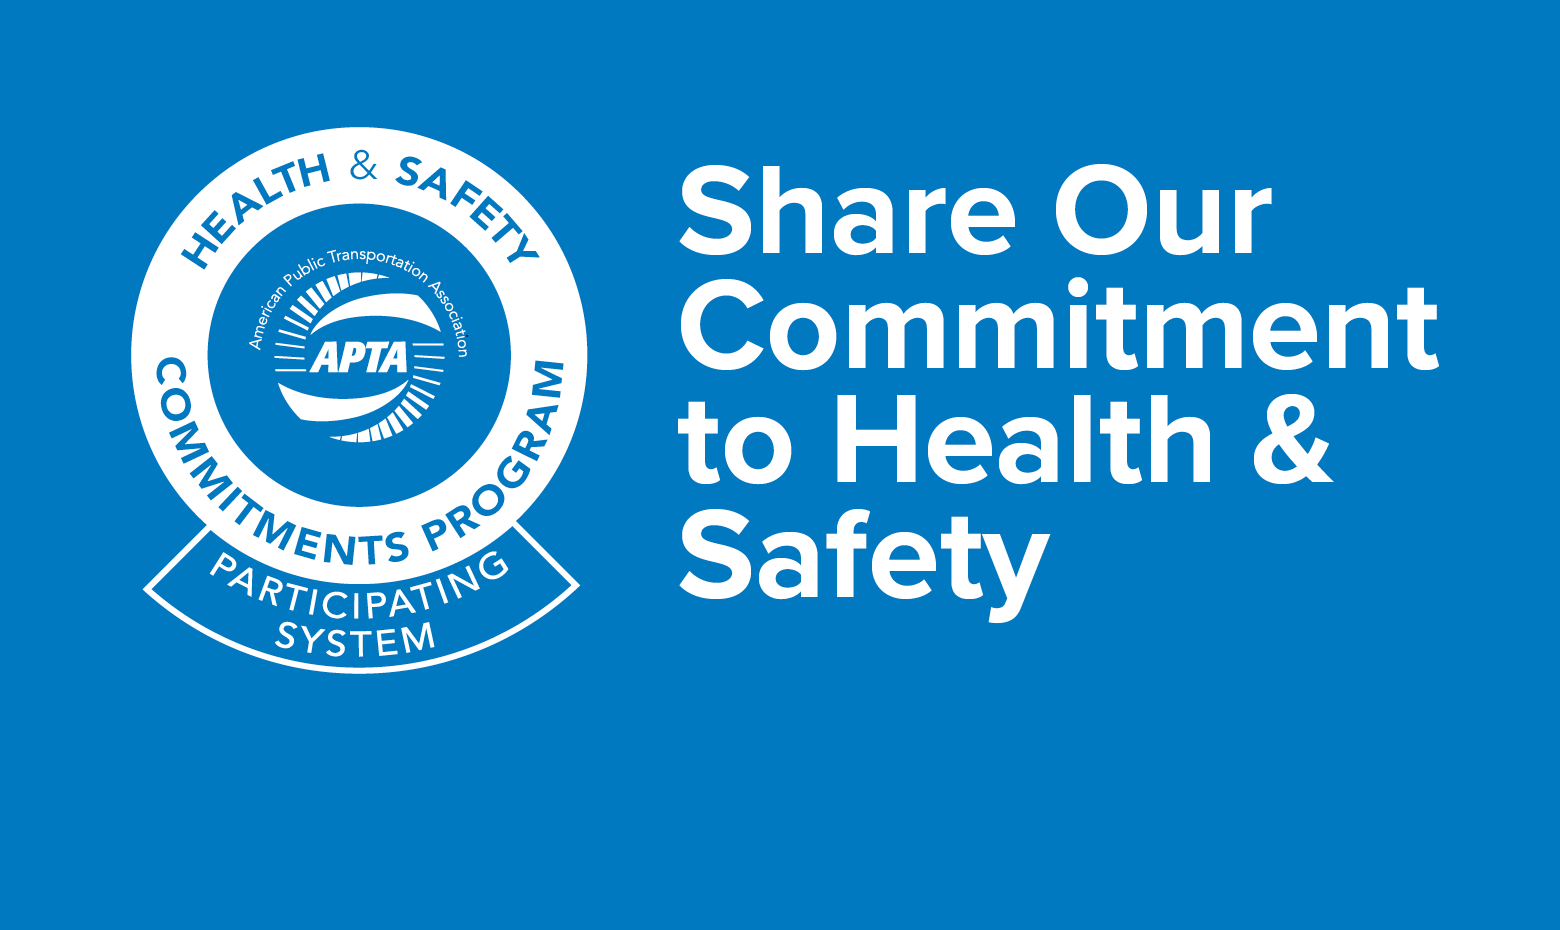 We are committed to health and safety